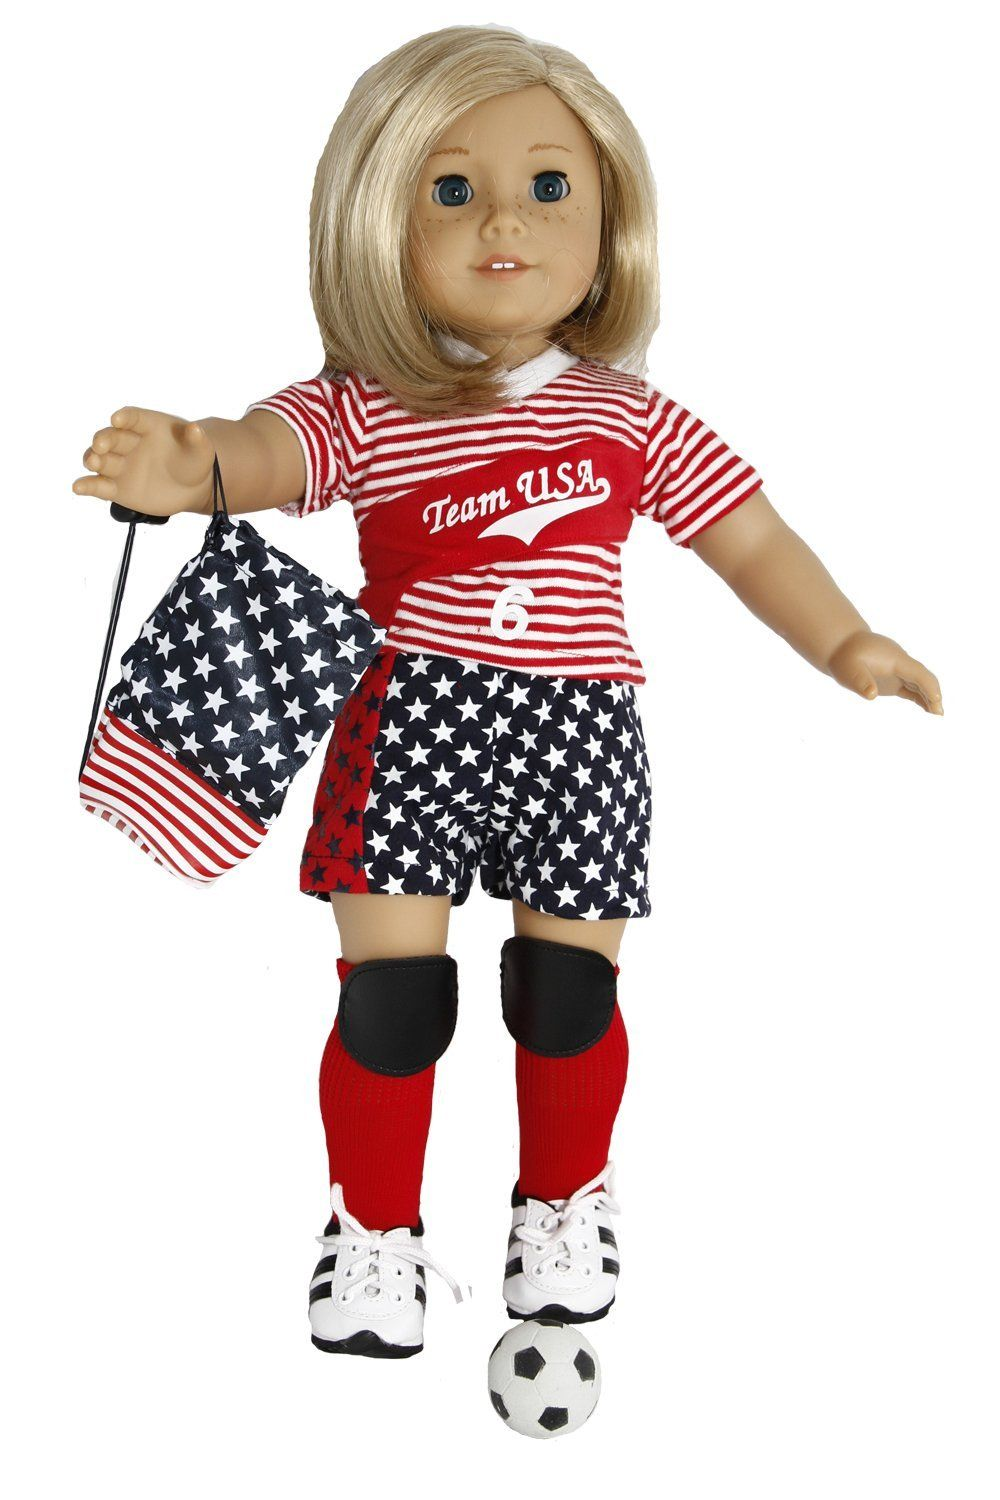 Amazon.com : Go Team USA Soccer Outfit for 18 Inch Dolls Like American Girl : Doll Clothing And Shoes : Toys & Games